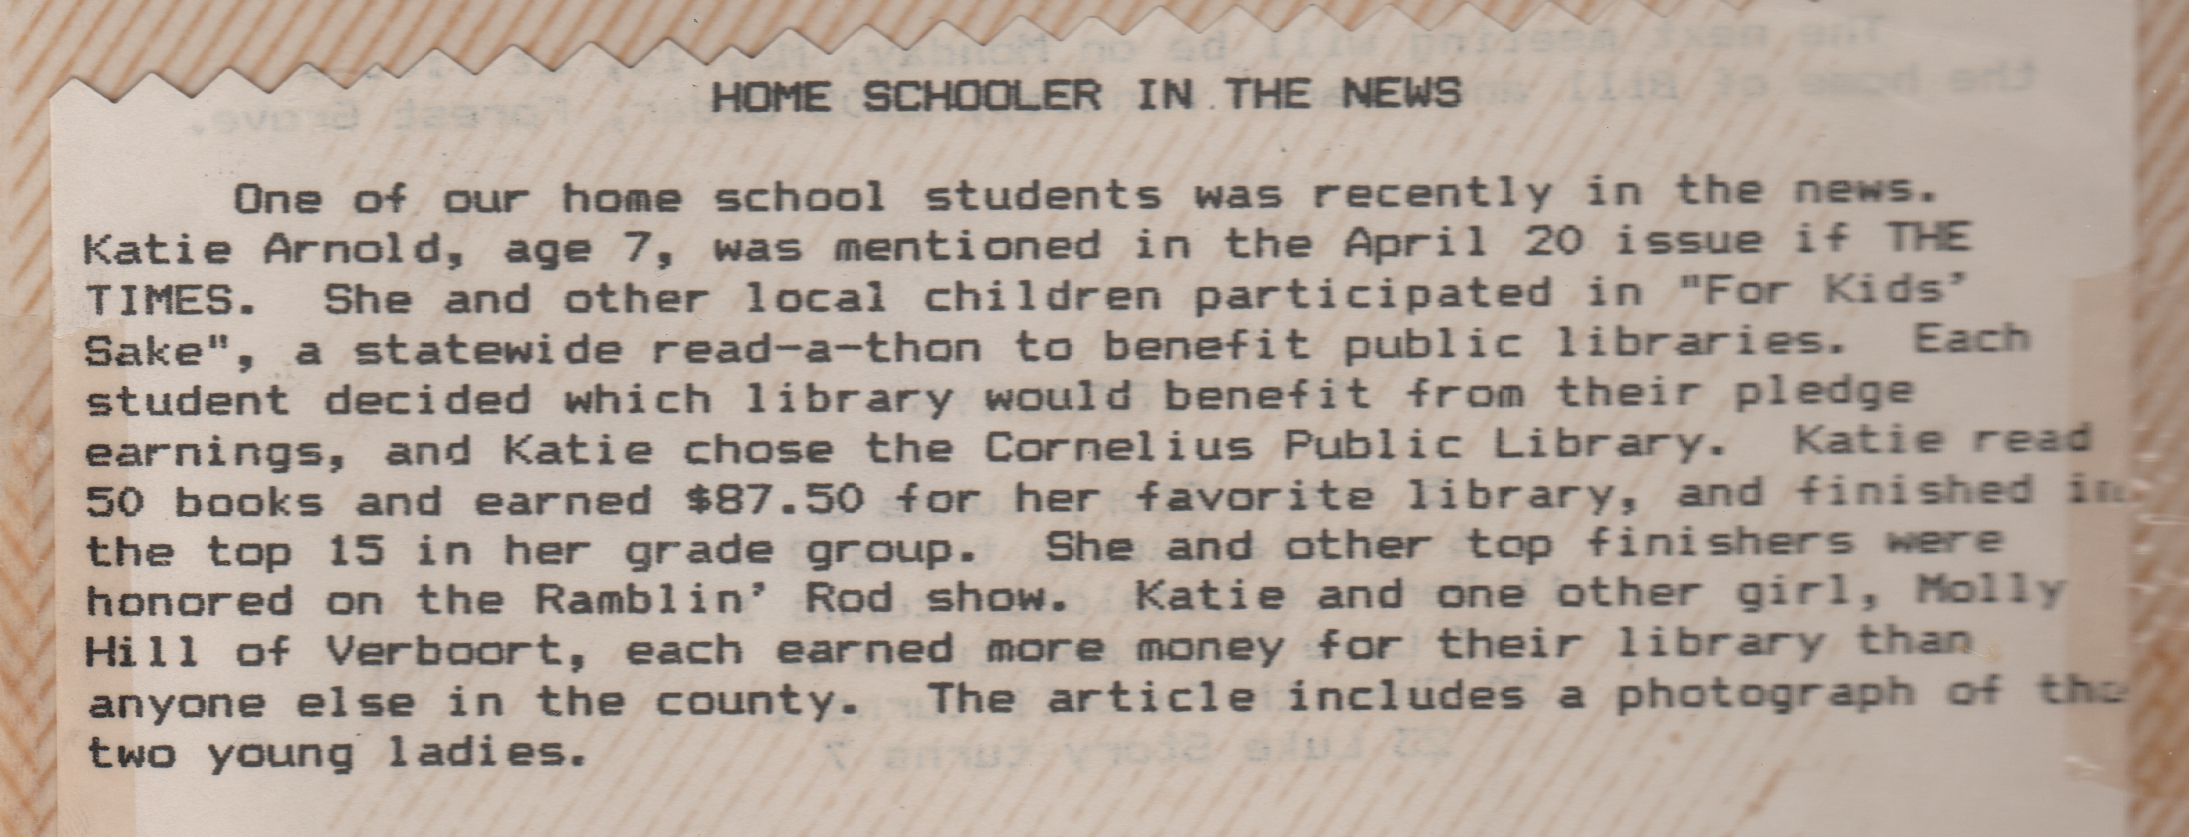 1988-04-20 - Molly Hill, Katie Arnold, county winners - 80 books read, state-wide For Kids Sake read-a-thon 2.jpg